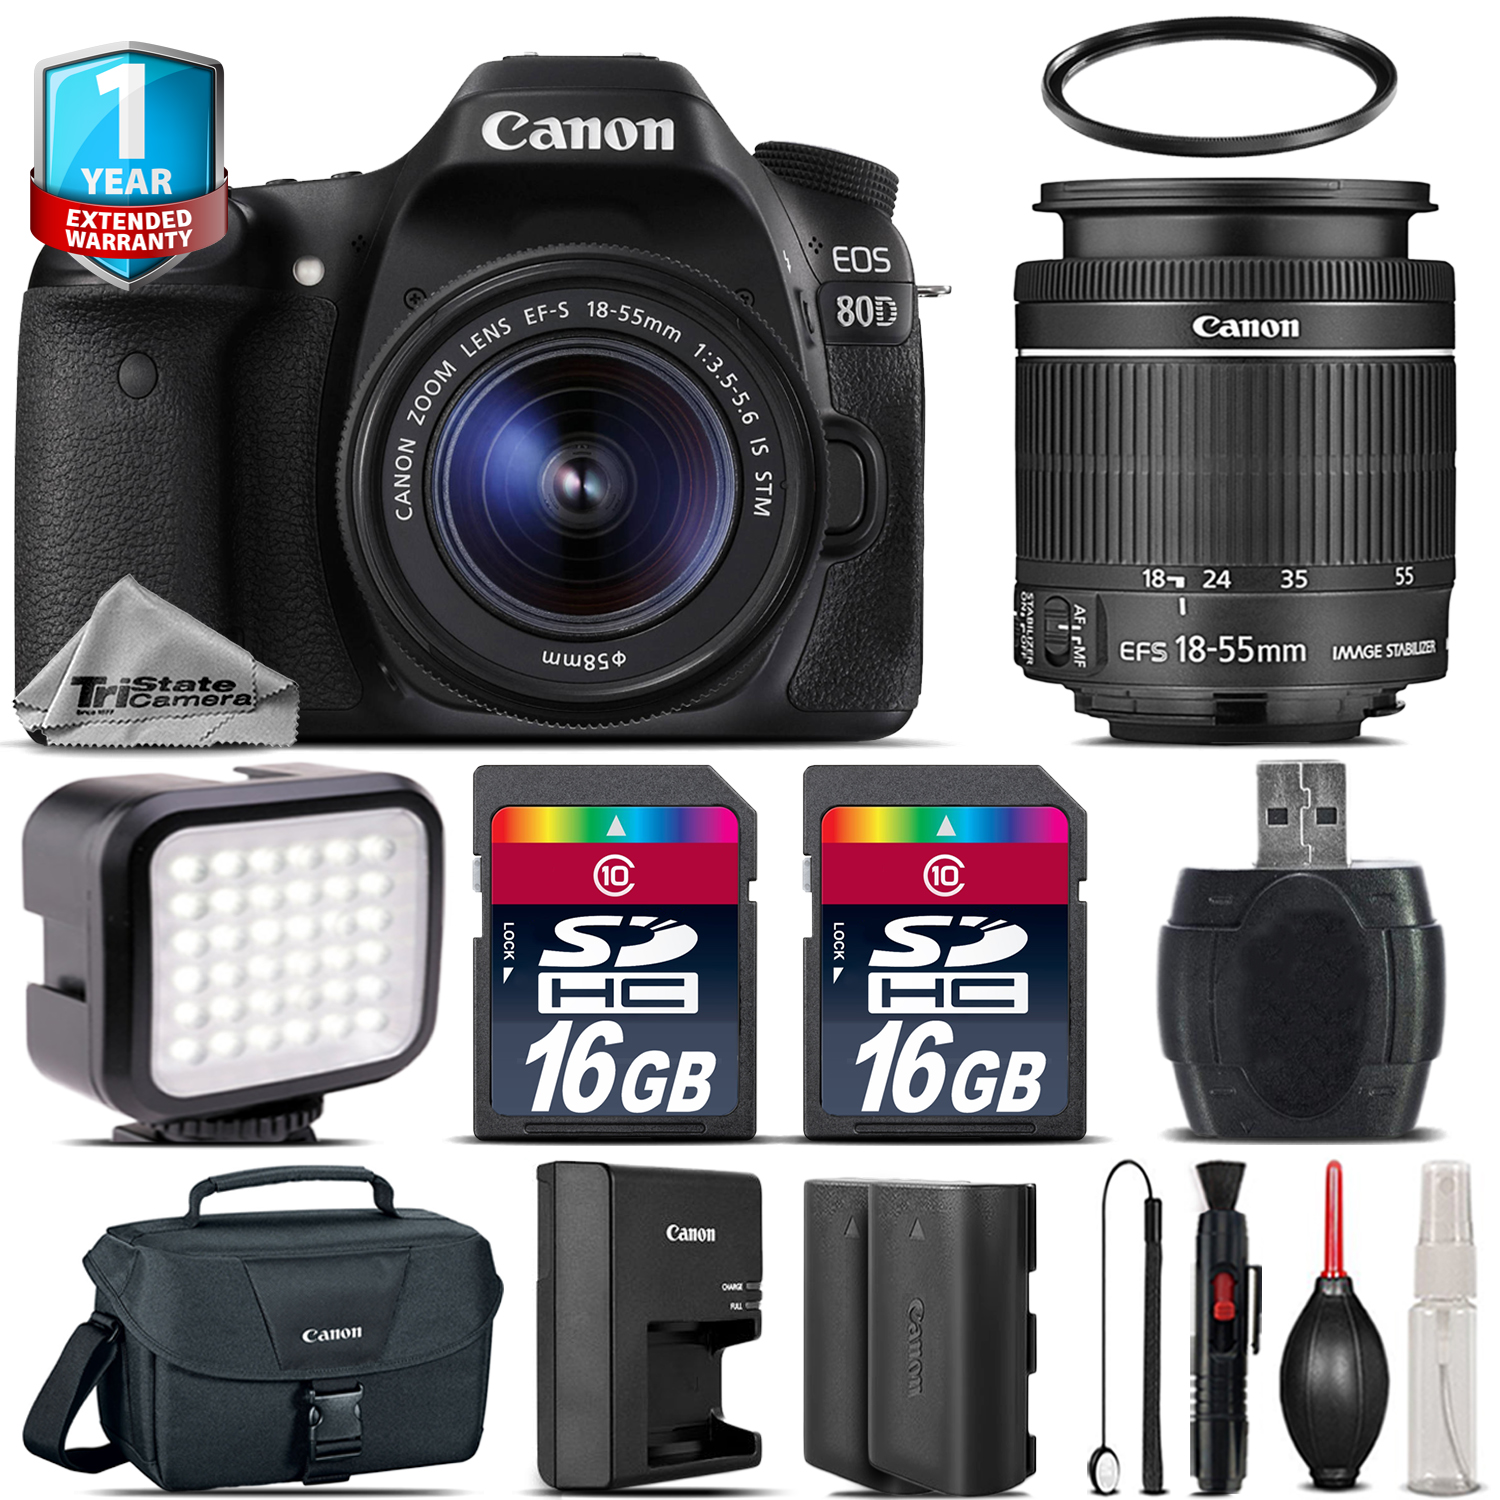 EOS 80D DSLR Camera + 18-55mm + LED + Extra Battery + 32GB + 1yr Warranty *FREE SHIPPING*